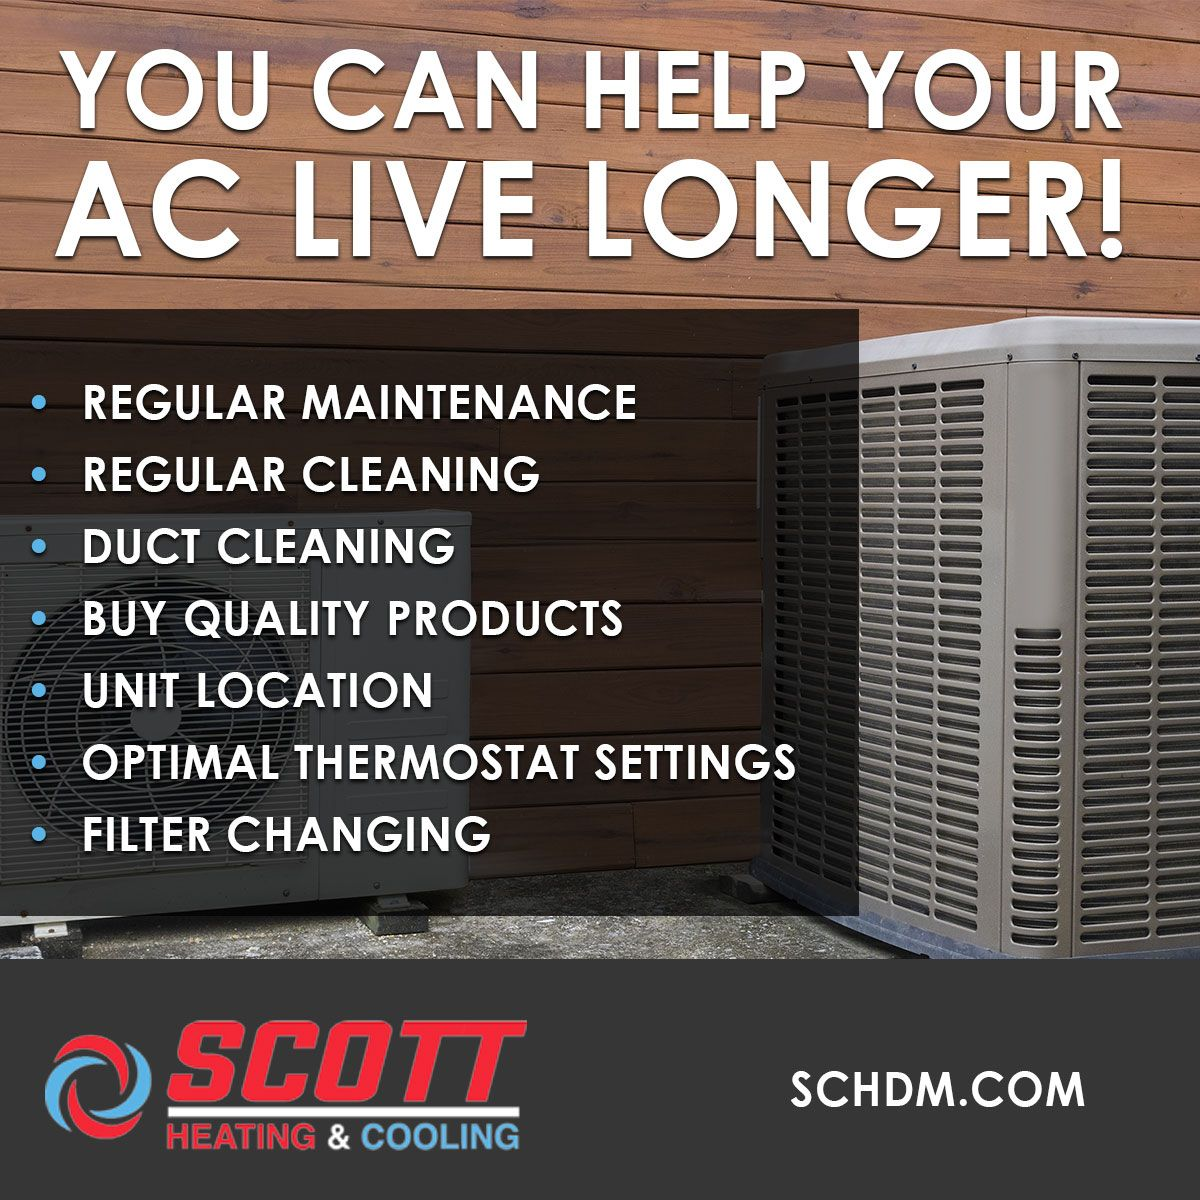 Keep Your Ac Alive With 7 Simple Tips Bettercallscott Www Schdm